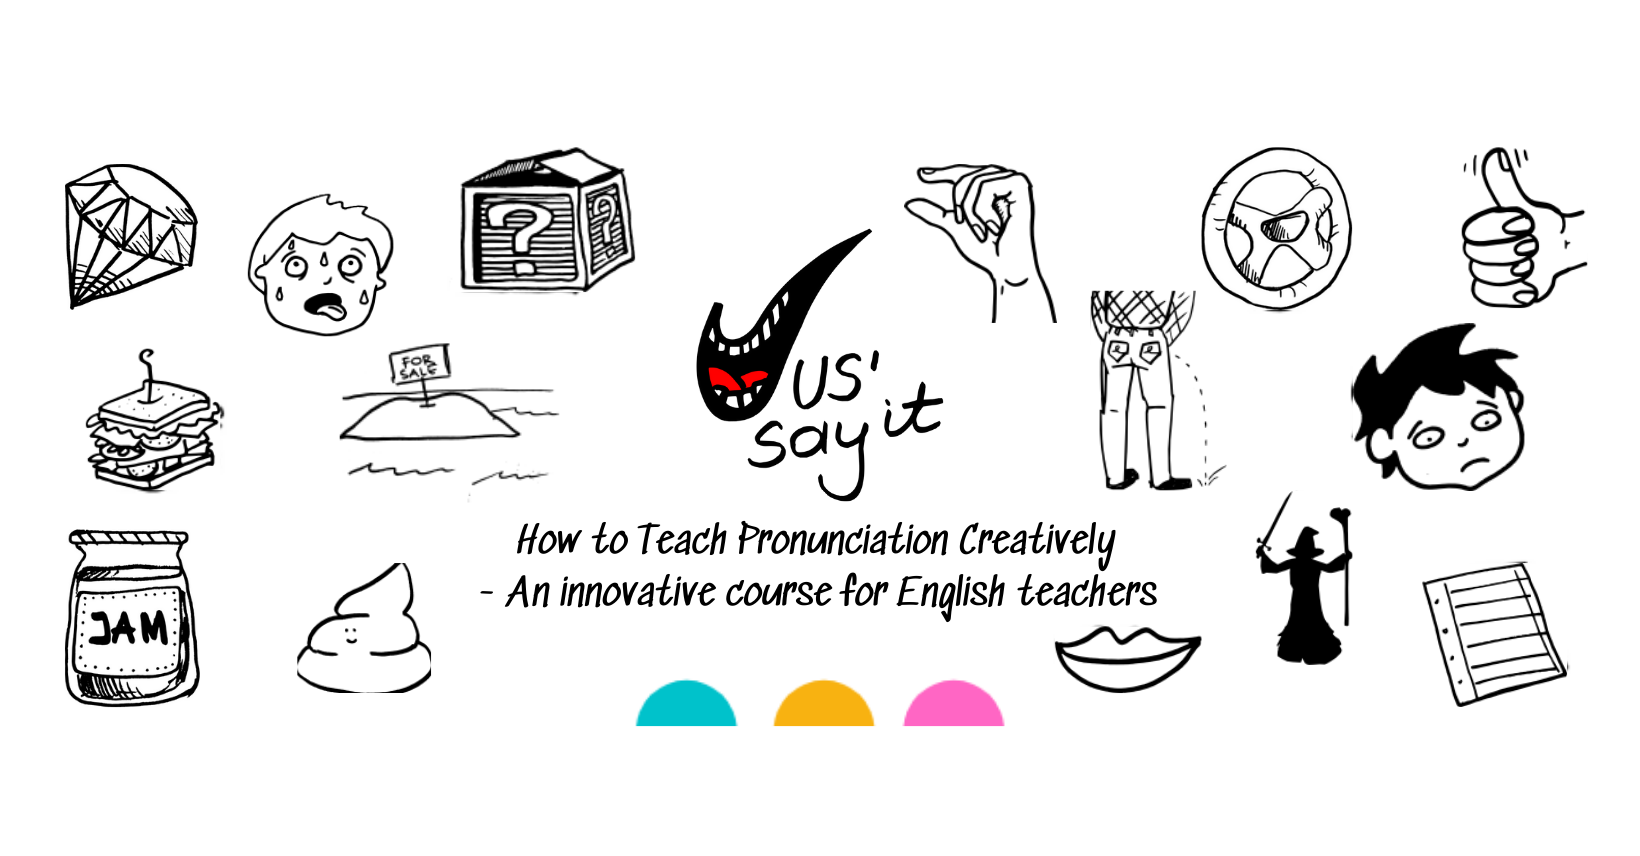 How-to-Teach-Pronunciation-Creatively-4-1